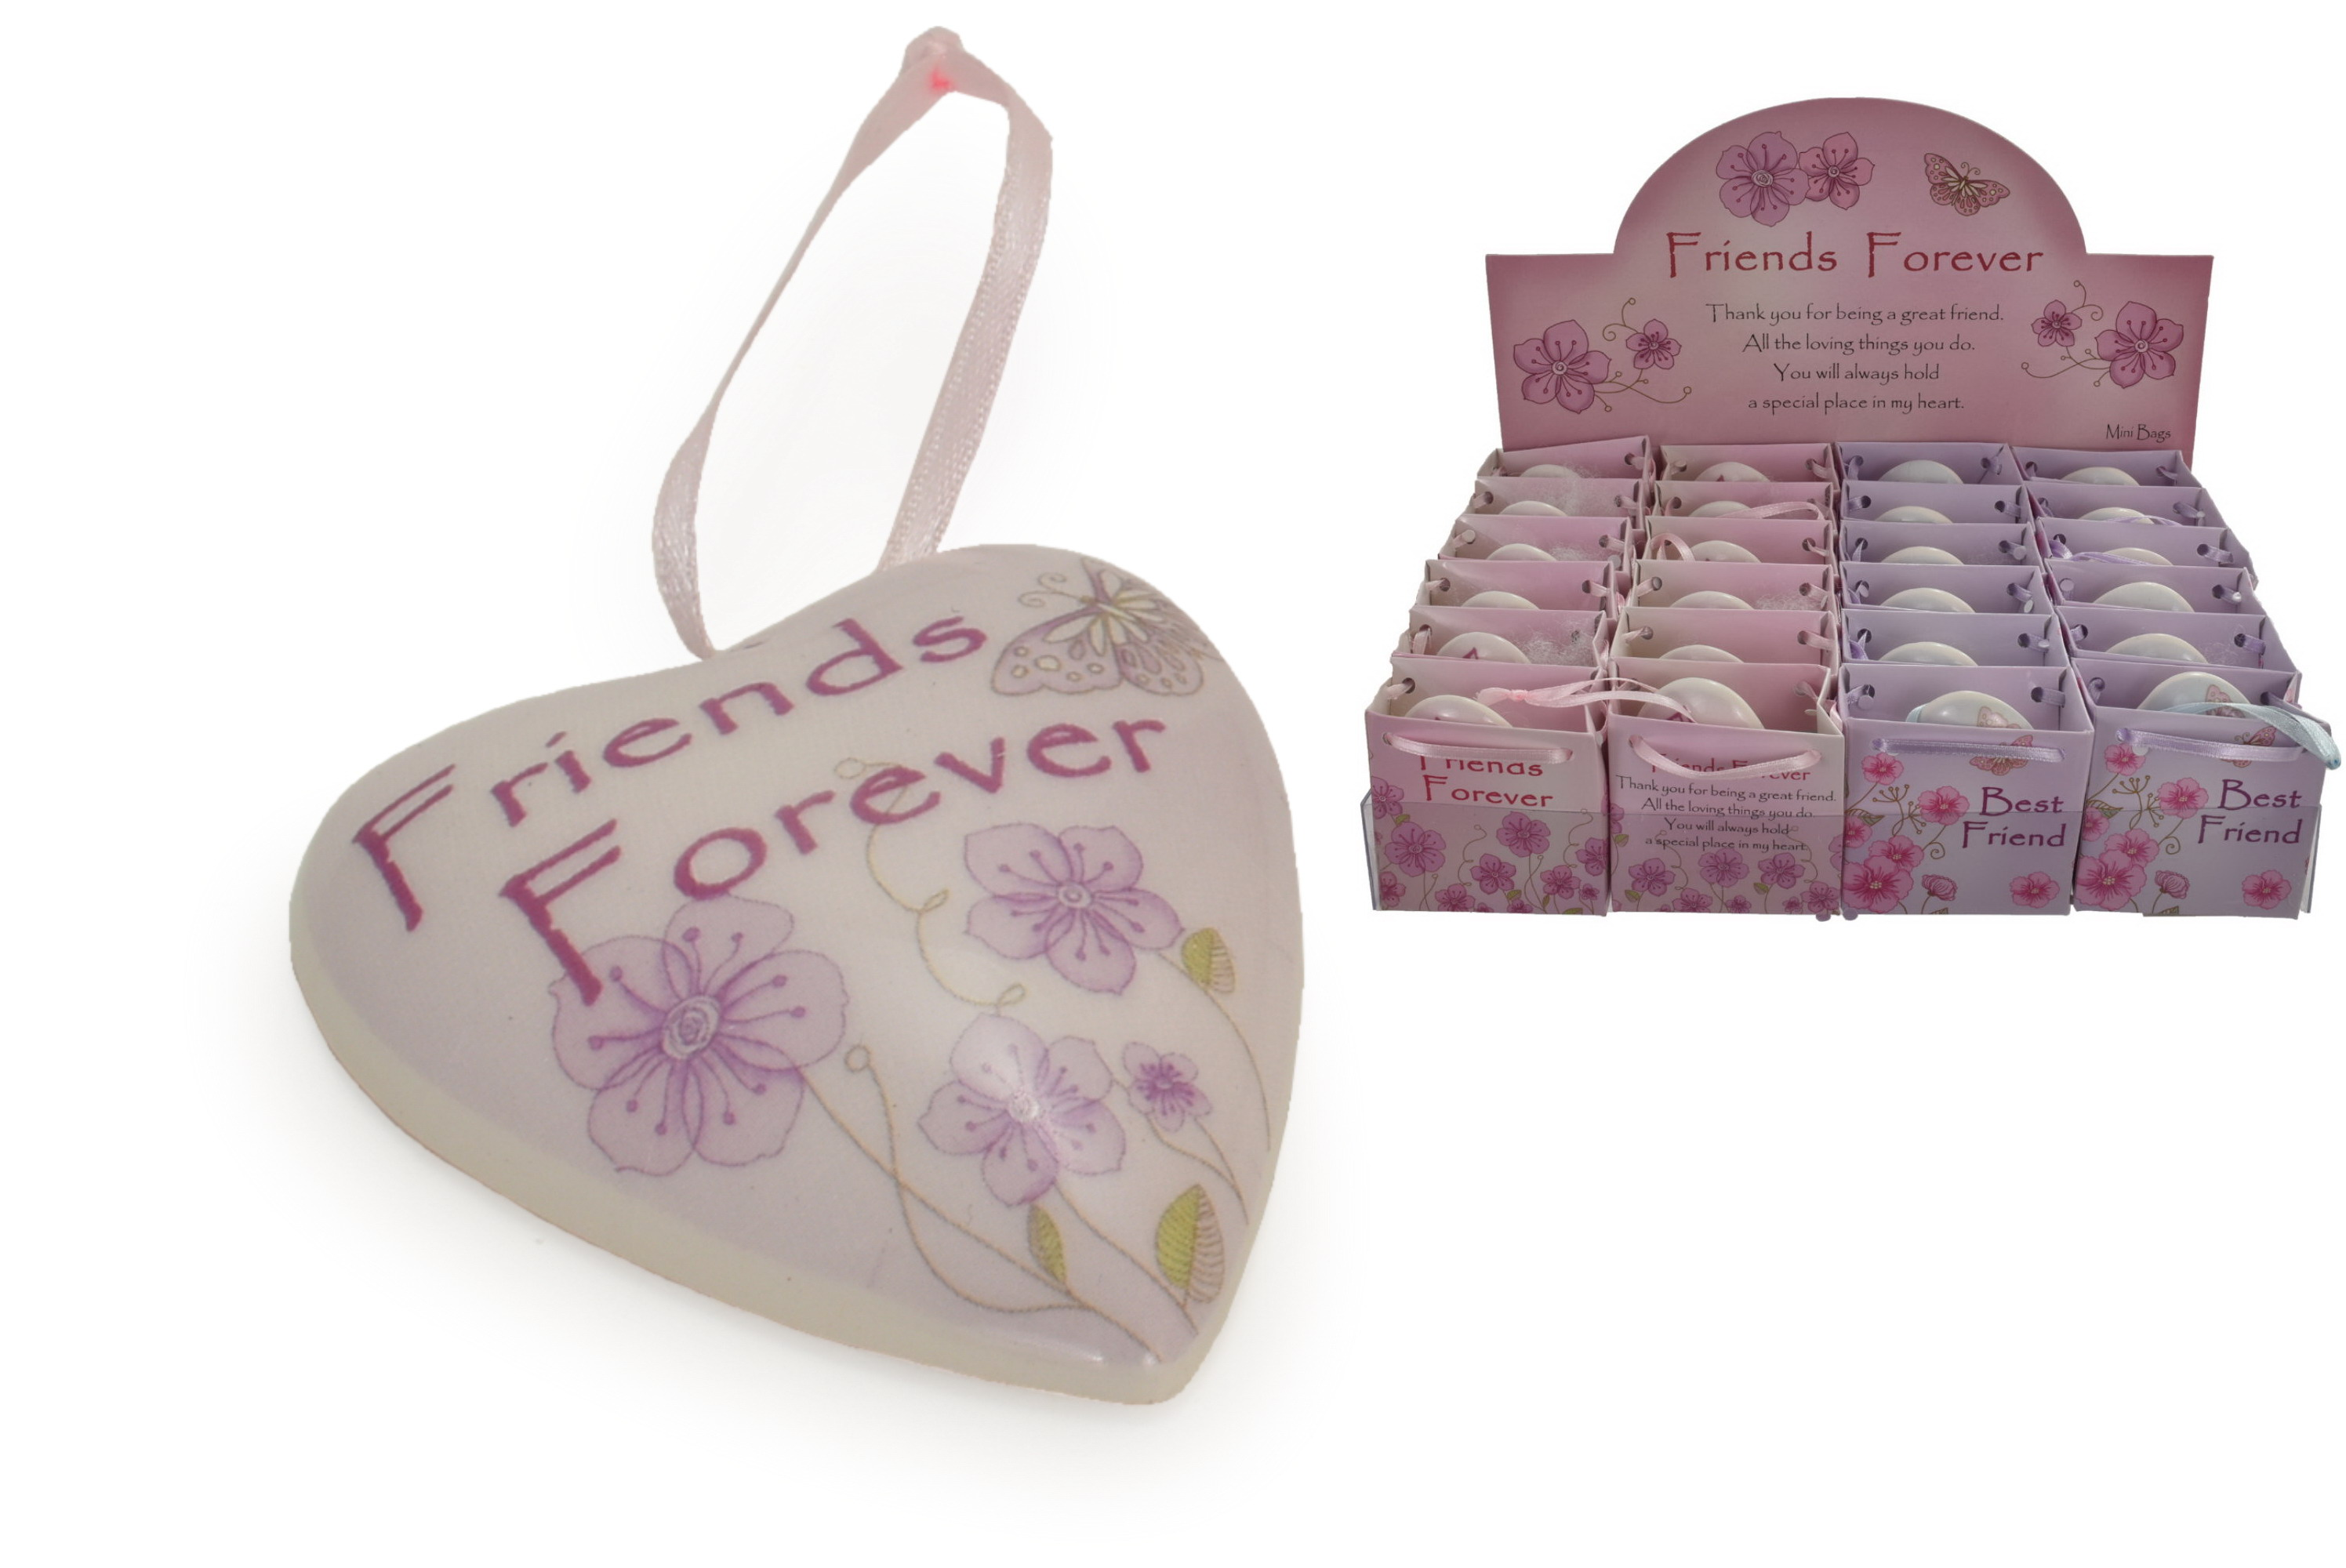 Friends Forever Heart In Bag (2 Asst) In Display Box